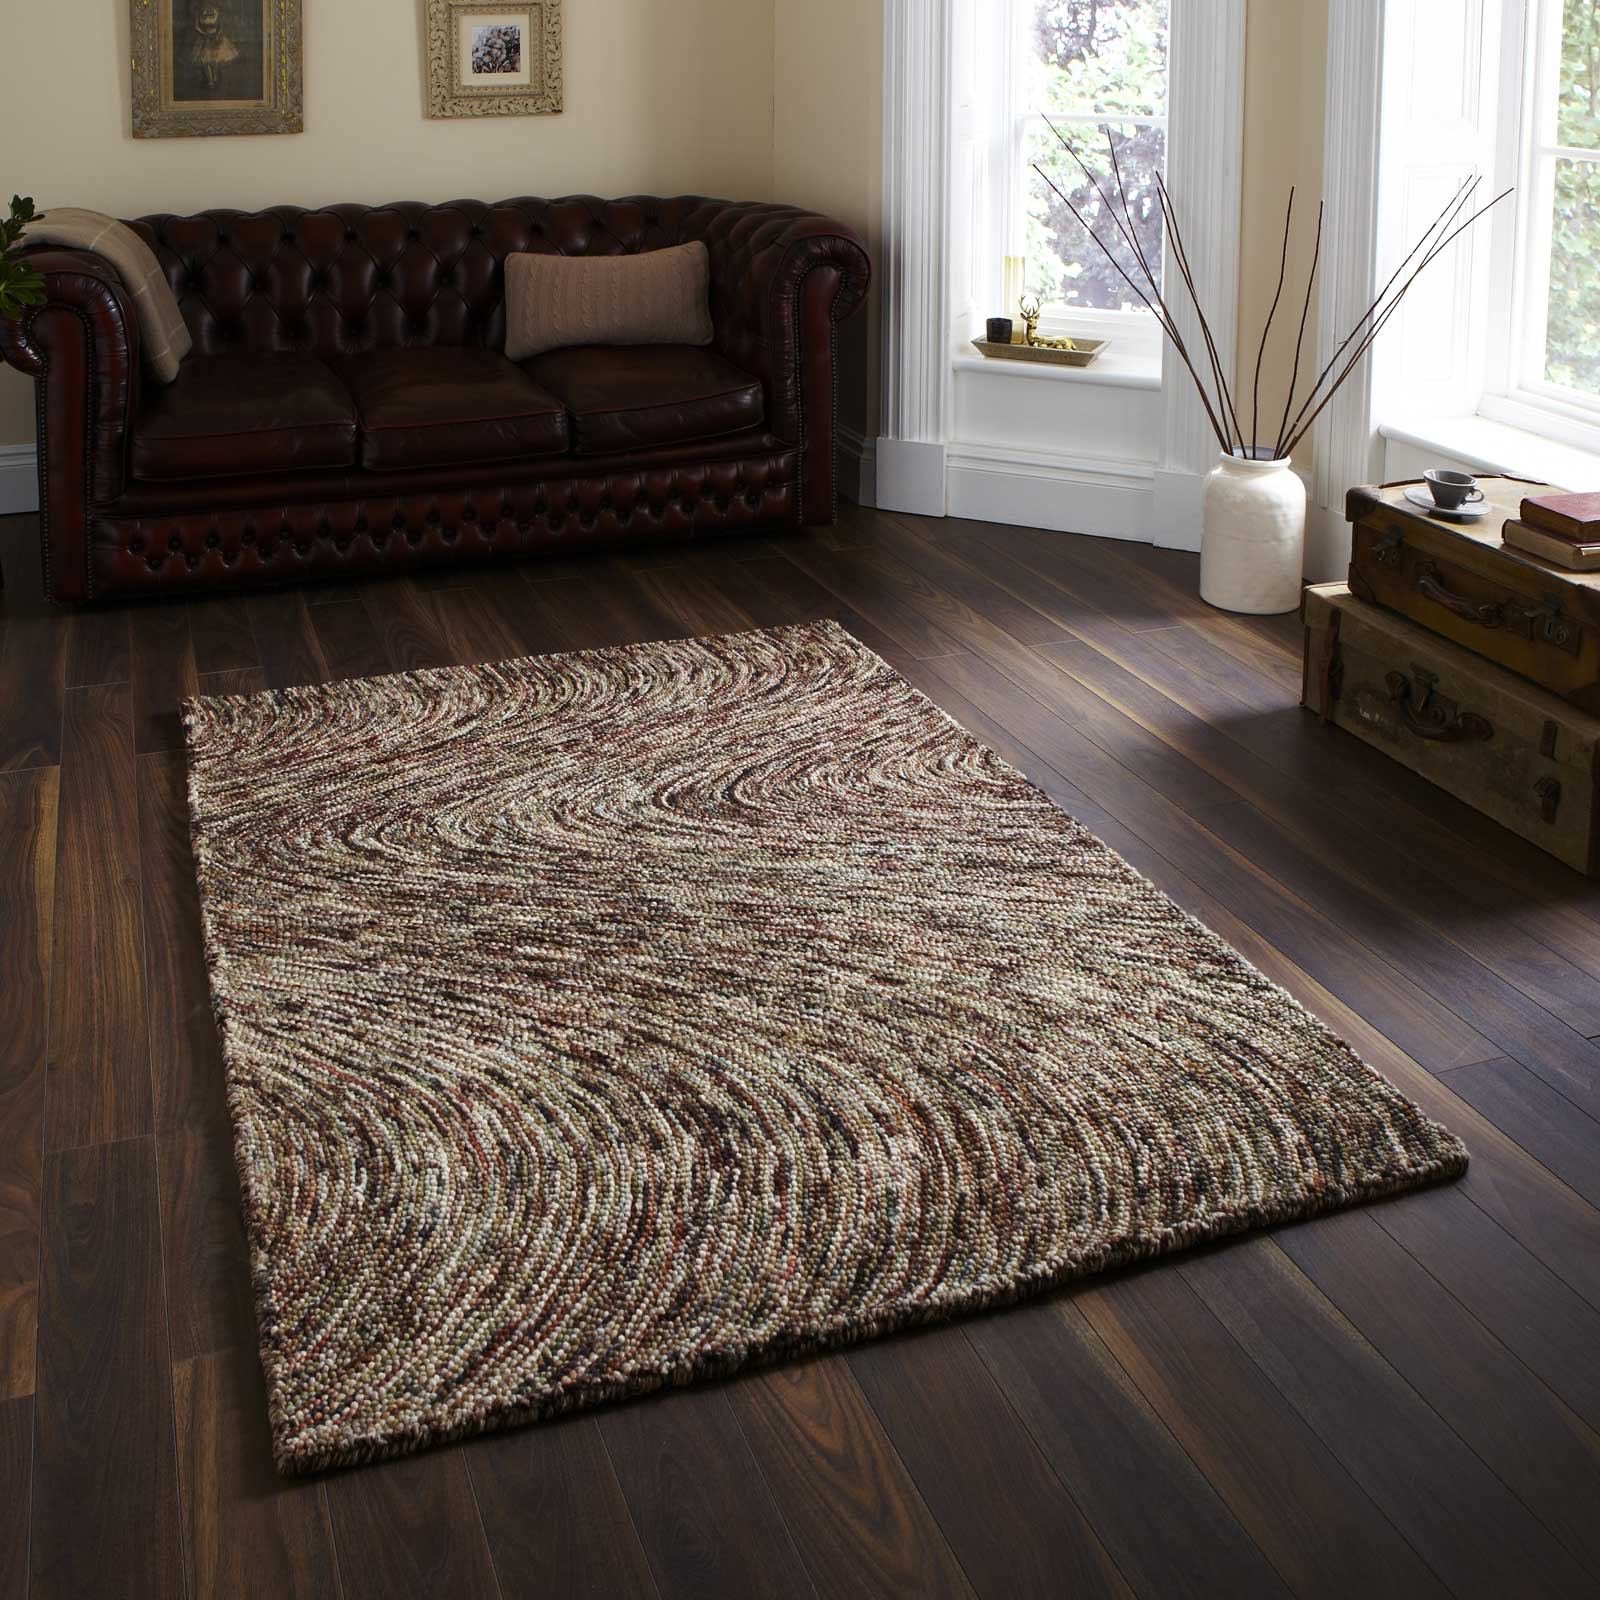 Inca IN10 Rugs in Natural